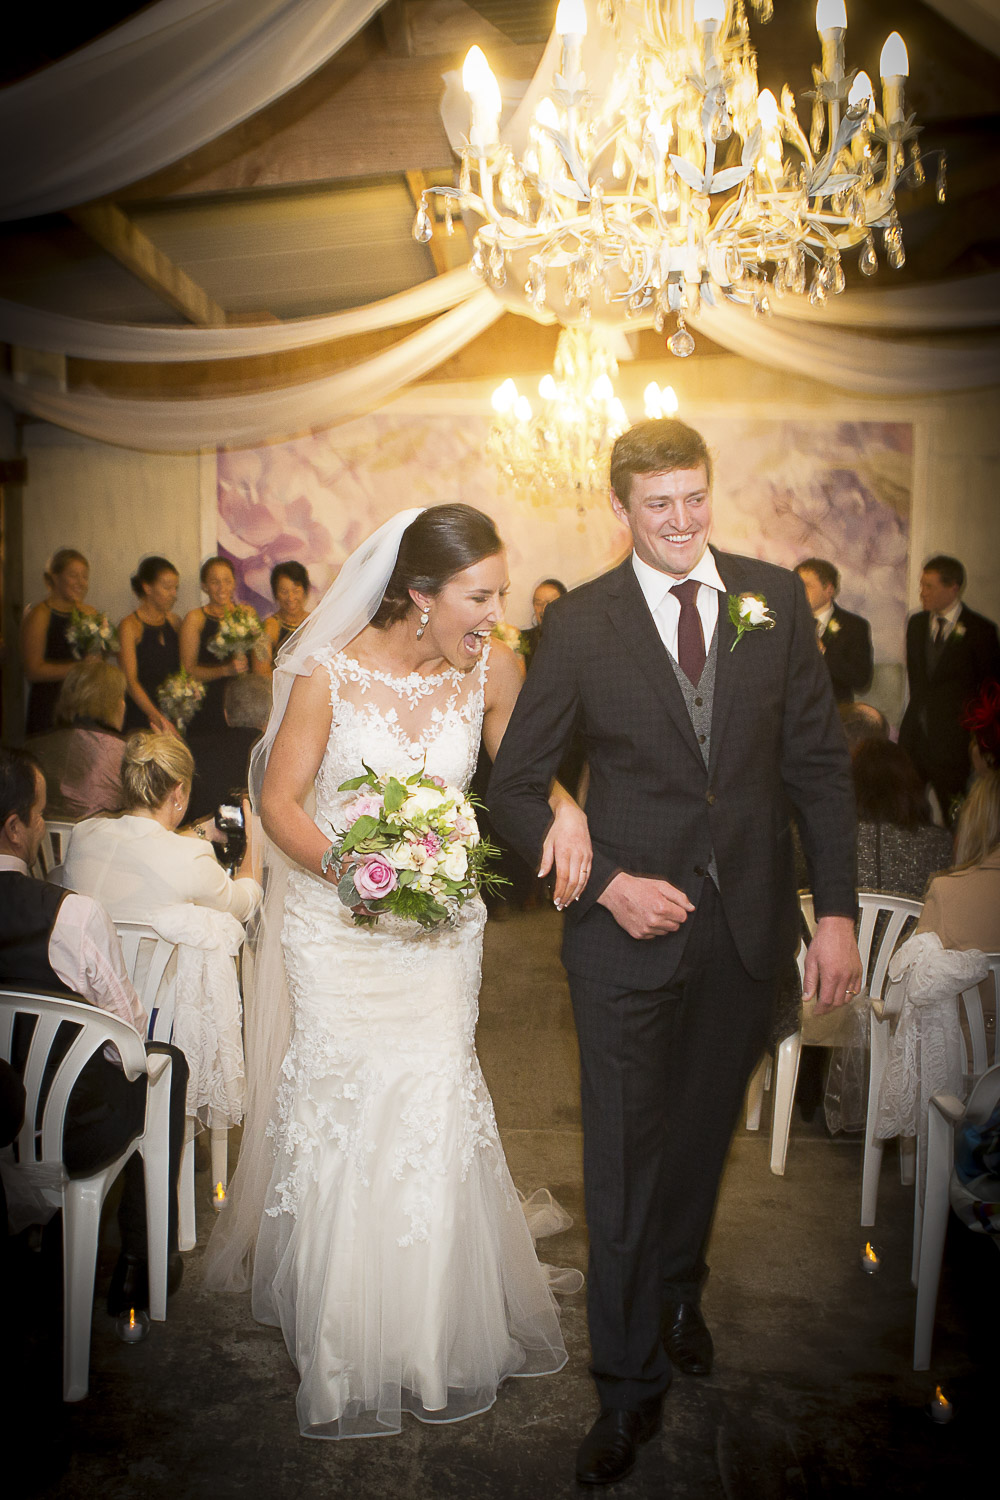 Palmerston North wedding venues